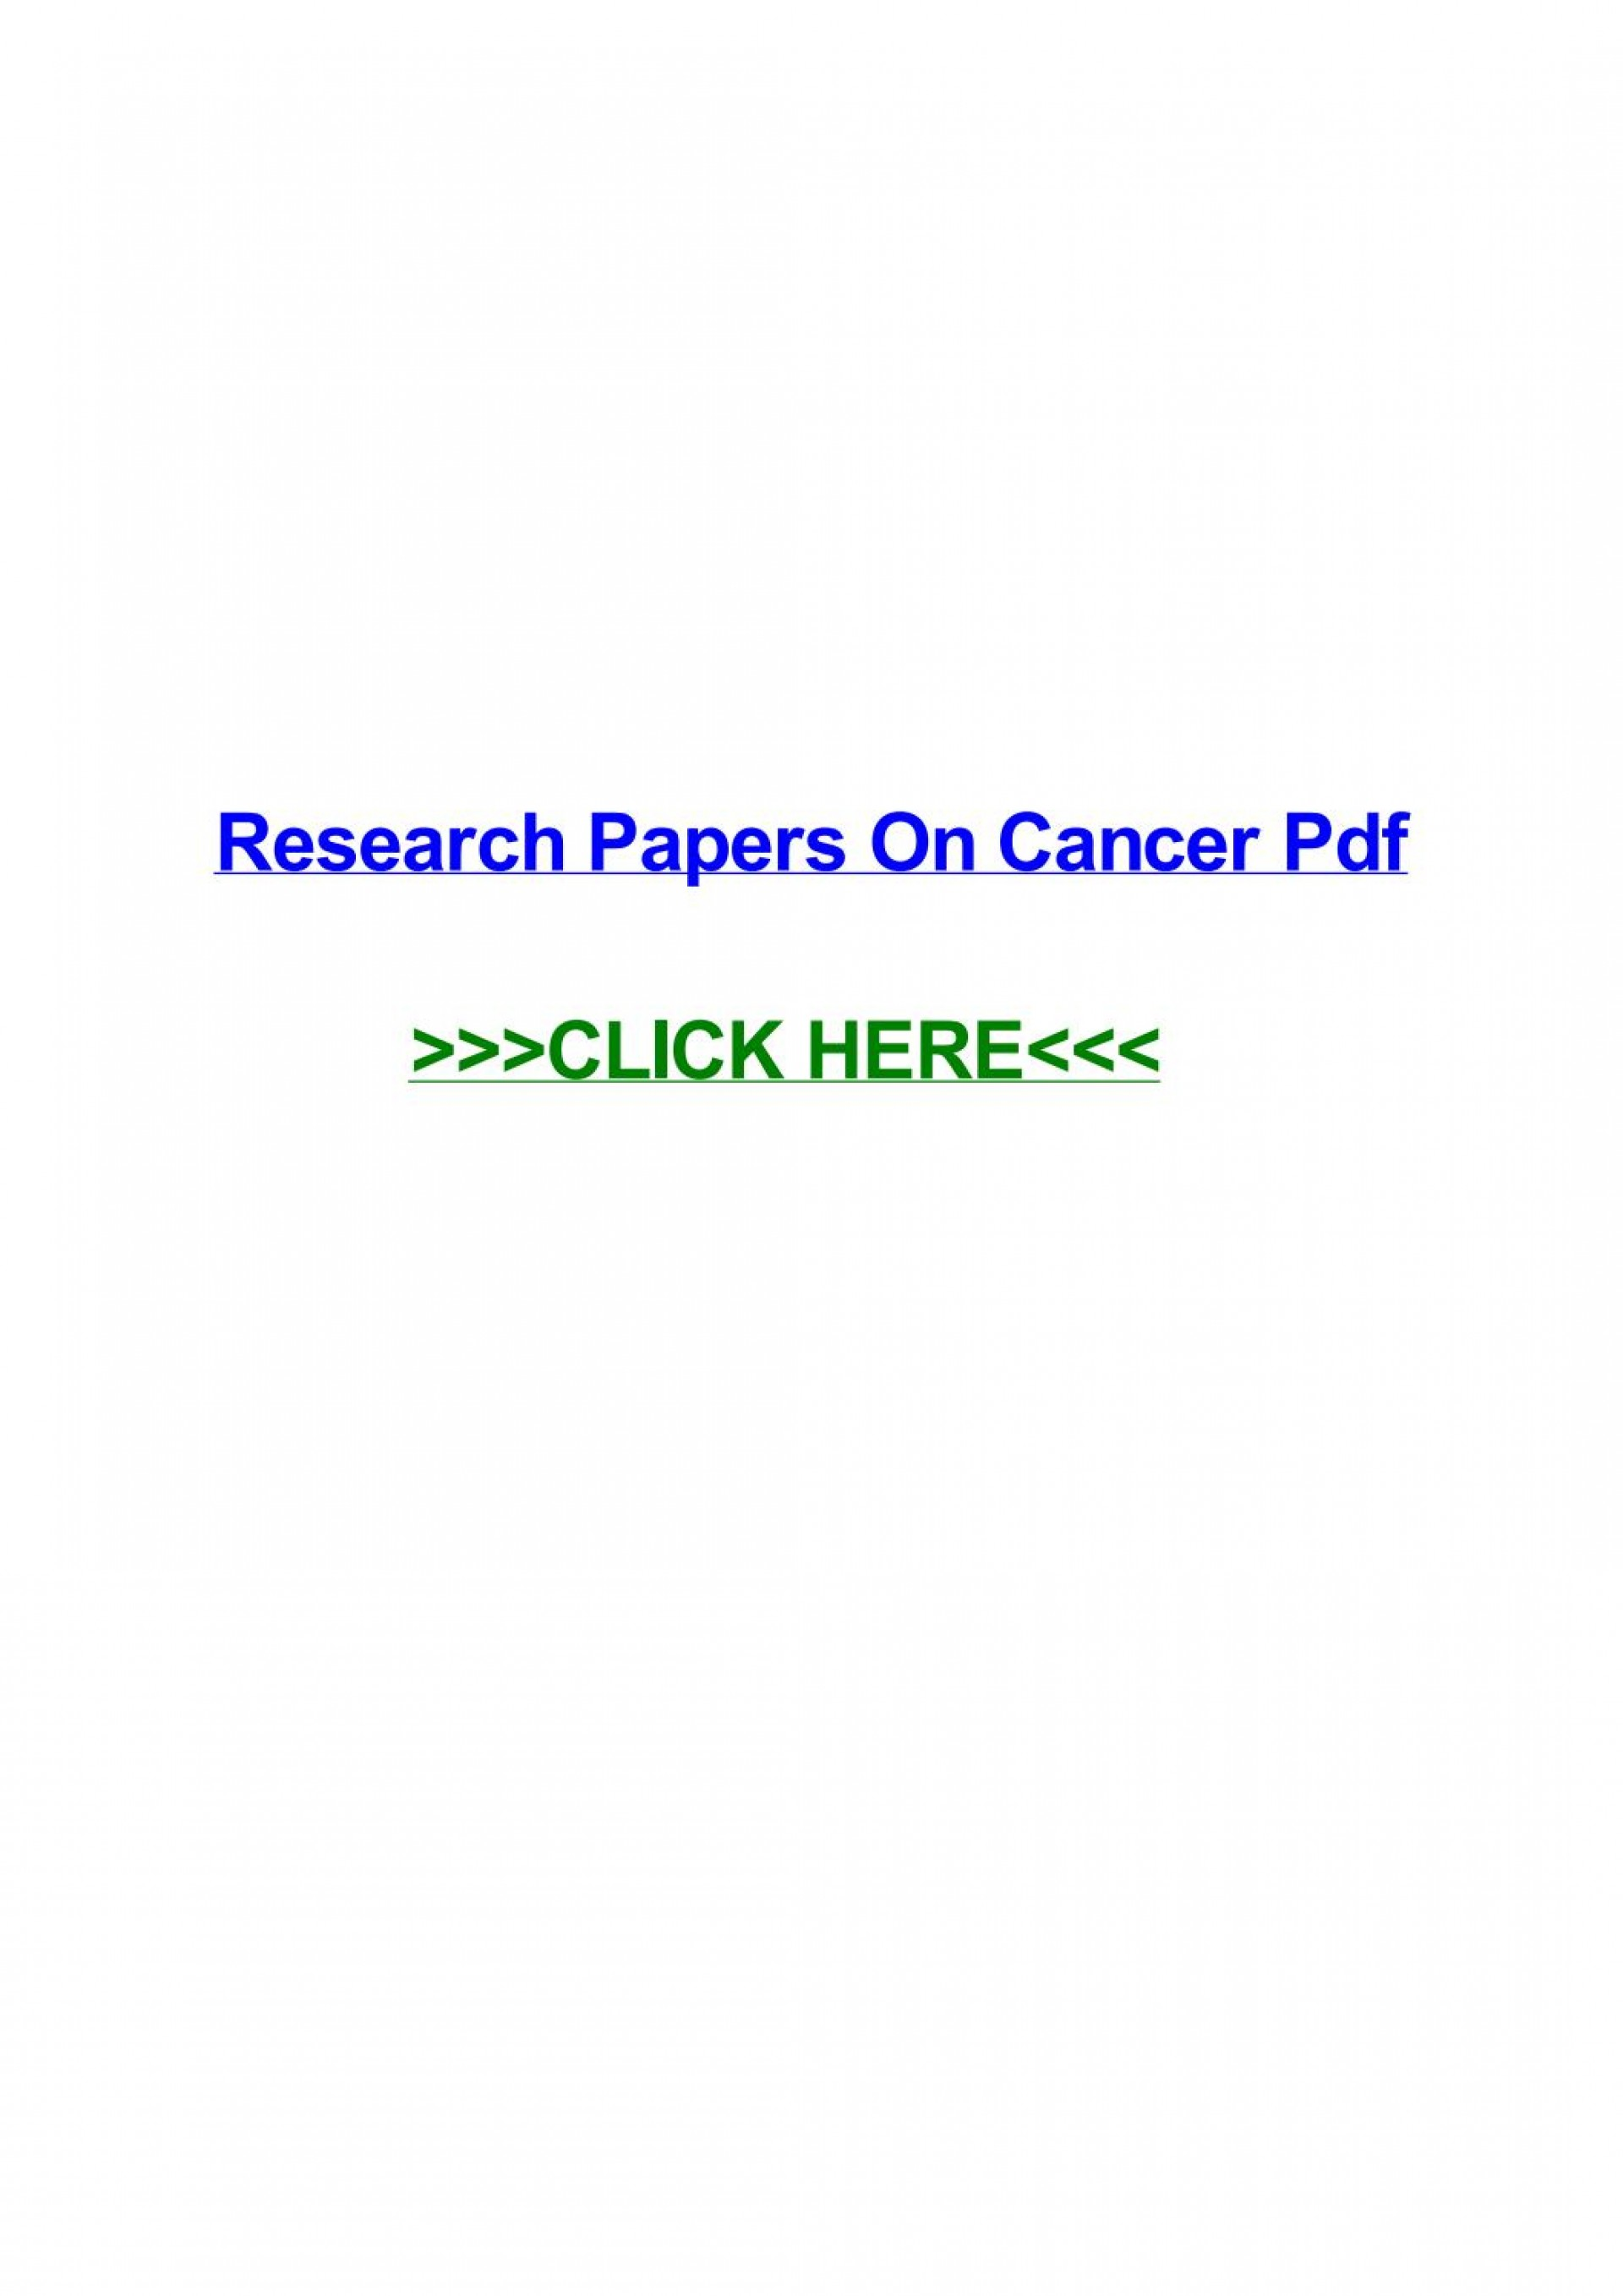 010 Research Paper Page 1 Cancer Papers Fascinating Pdf Lung Colon Skin 1920